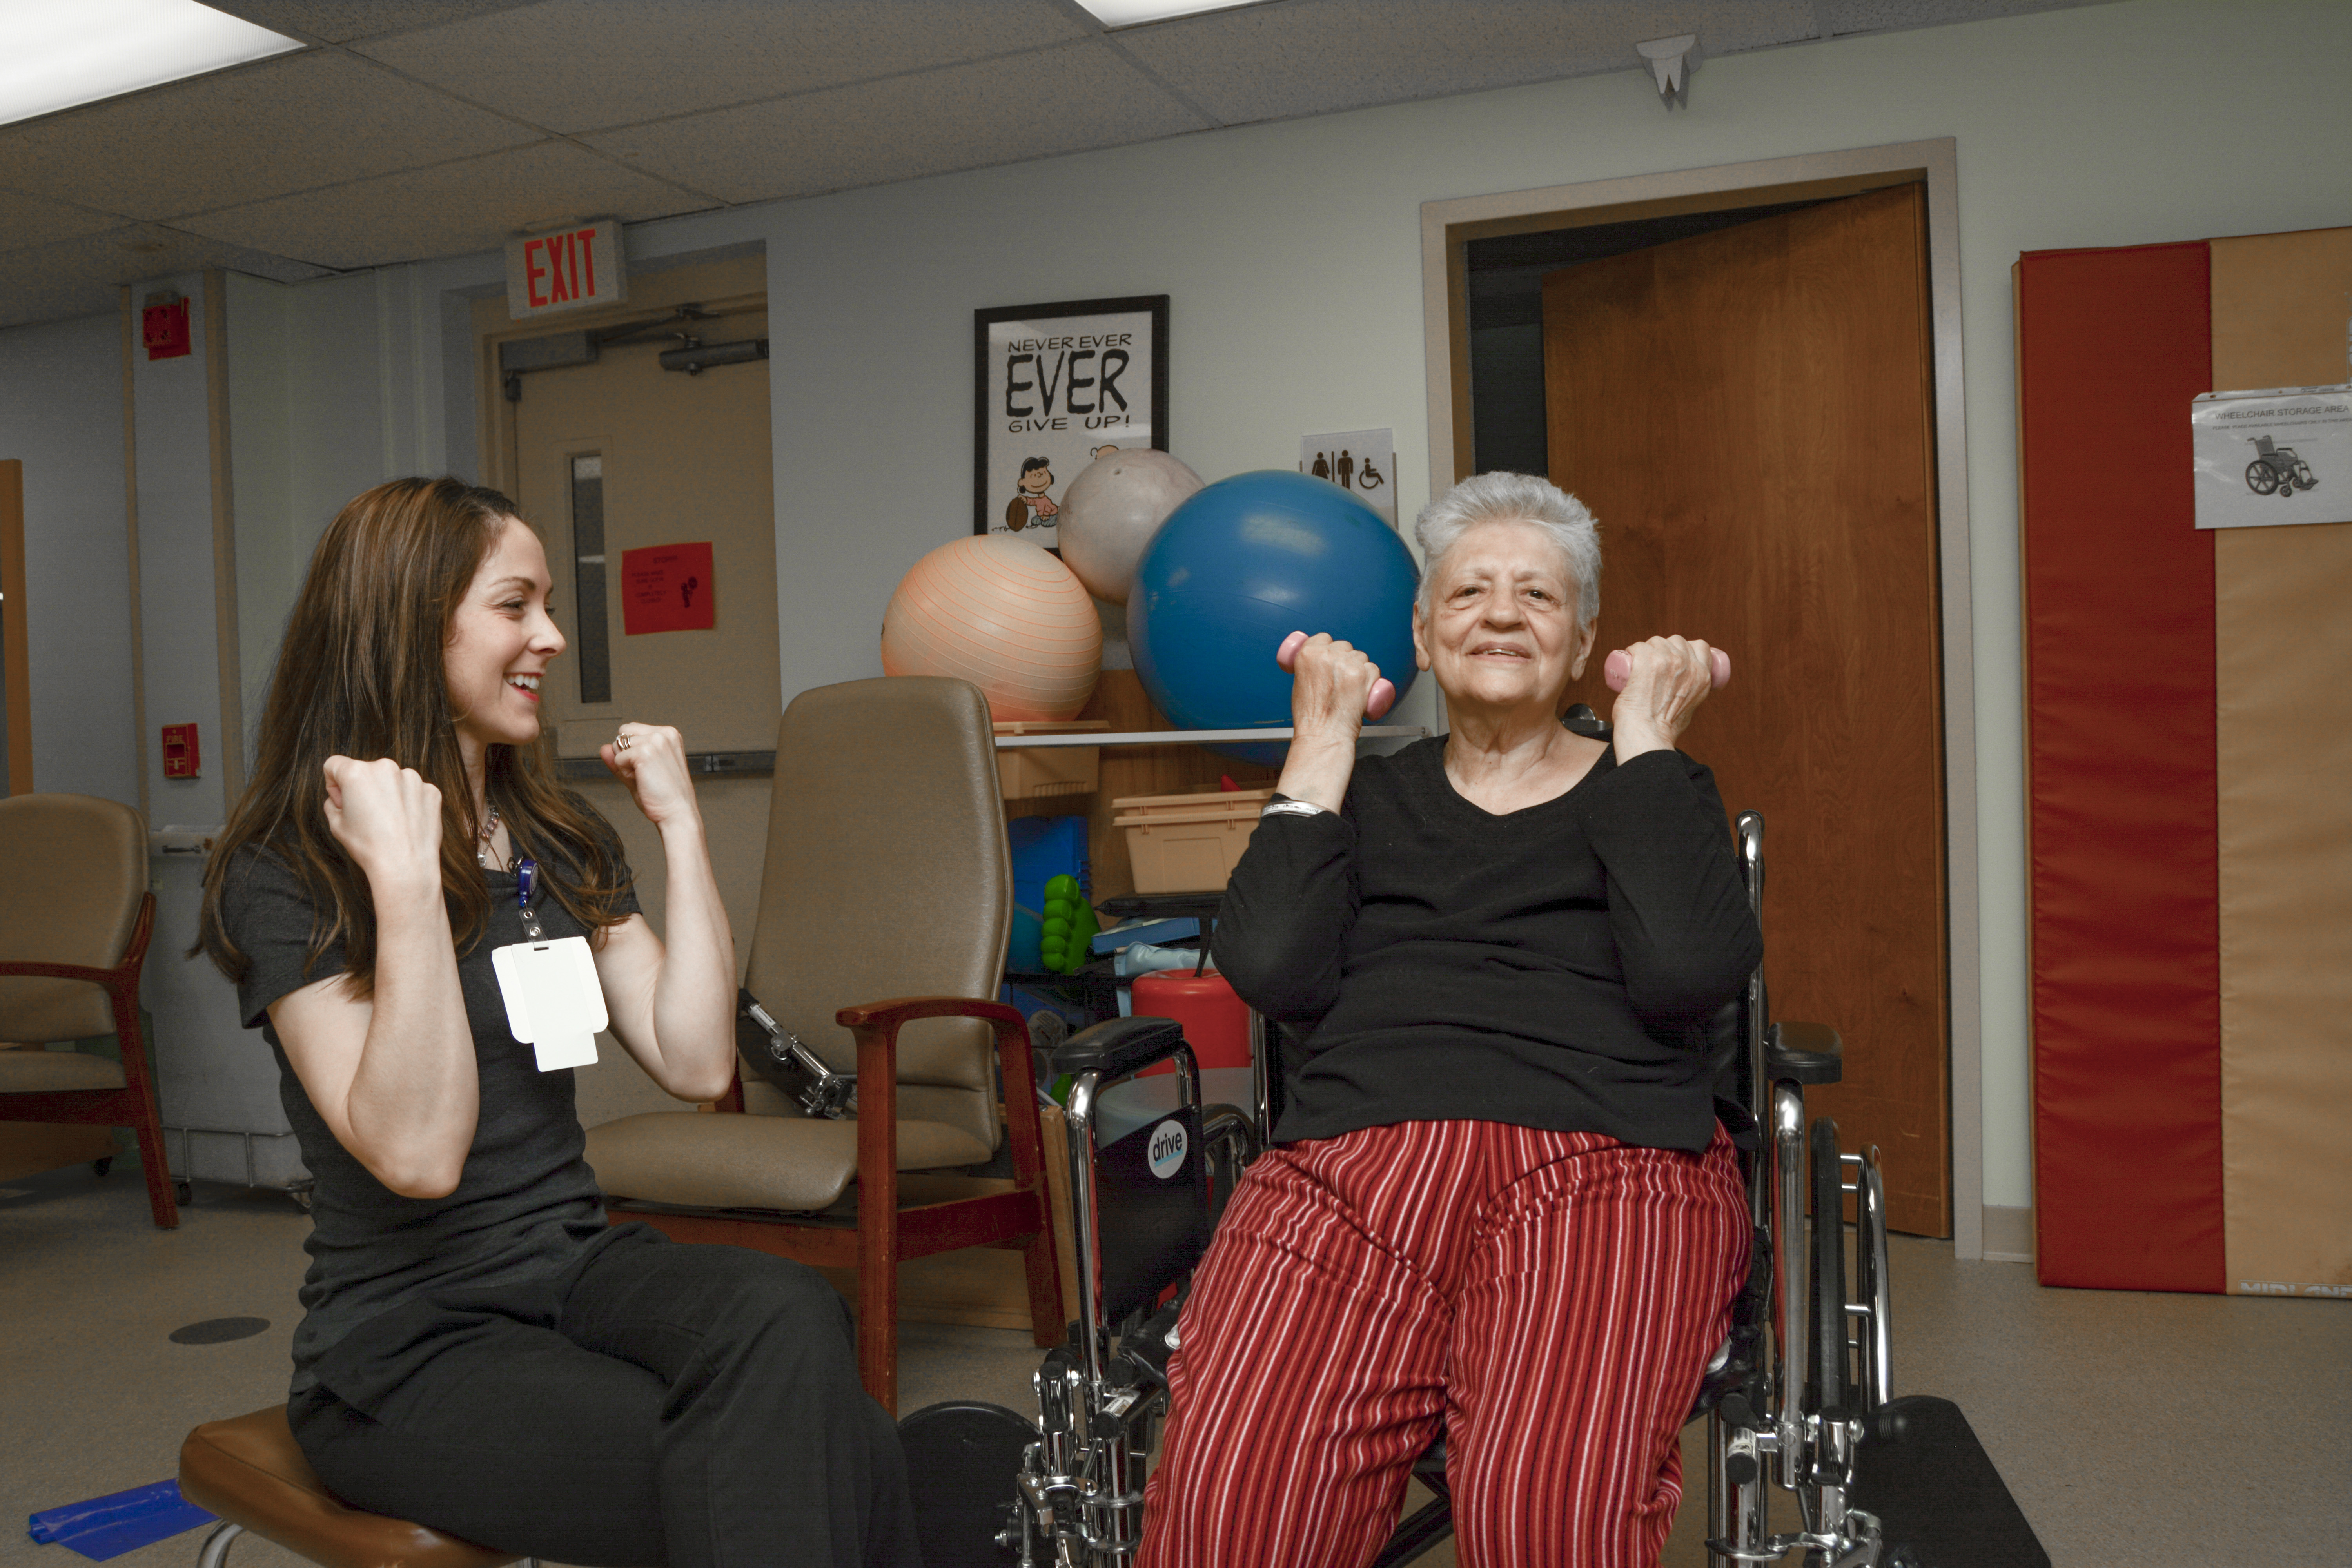 UPMC physical therapist working with woman